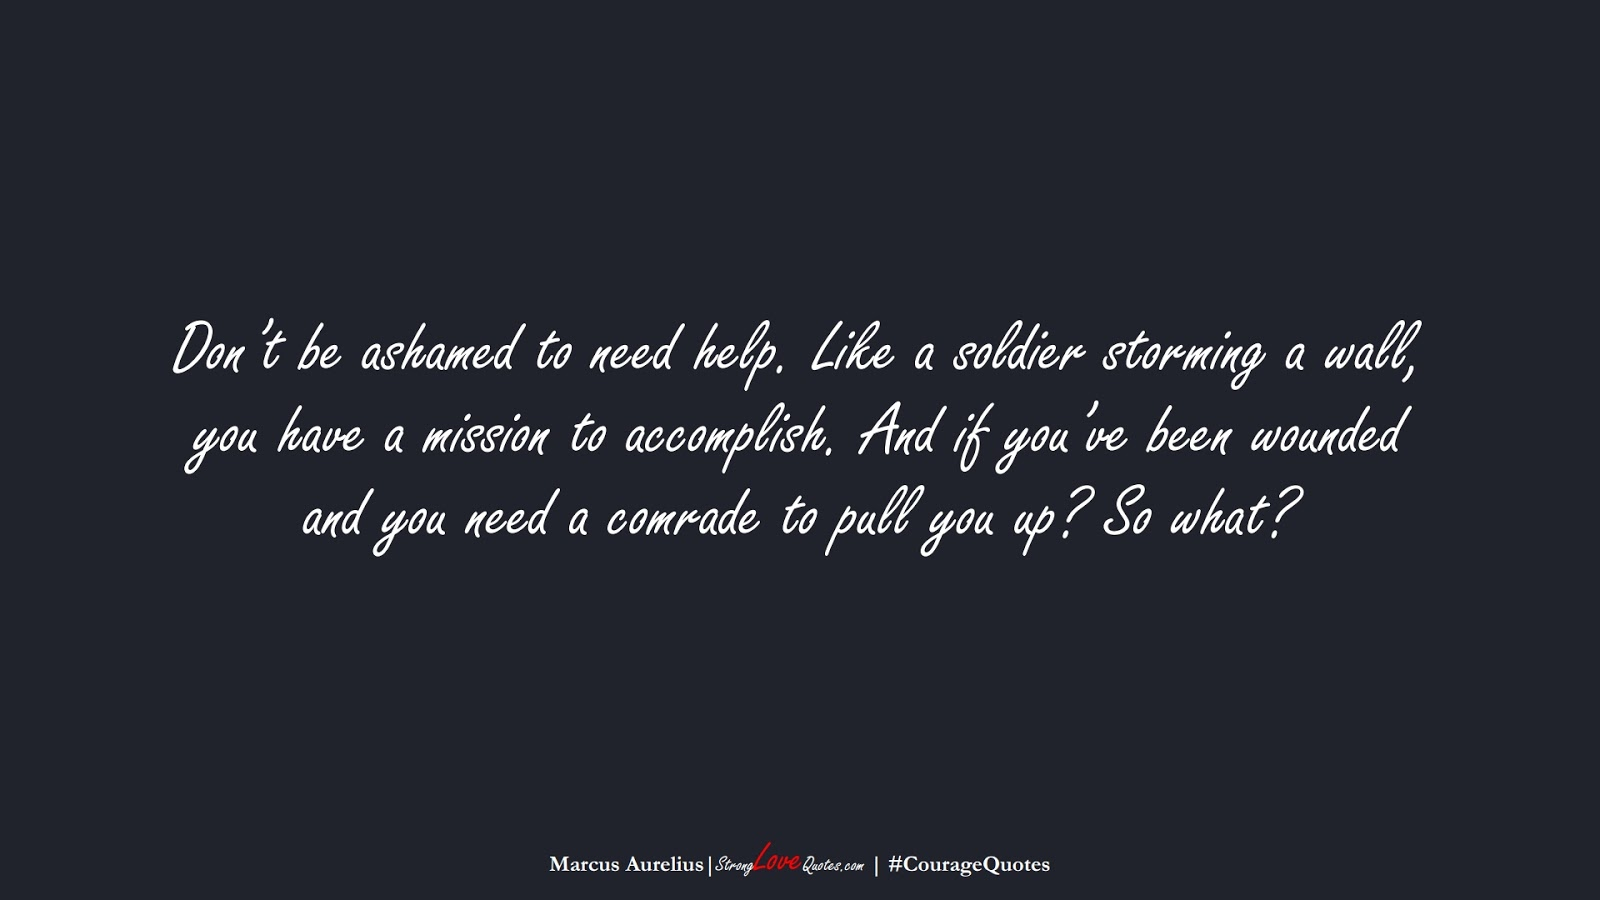 Don't be ashamed to need help. Like a soldier storming a wall, you have a mission to accomplish. And if you've been wounded and you need a comrade to pull you up? So what? (Marcus Aurelius);  #CourageQuotes